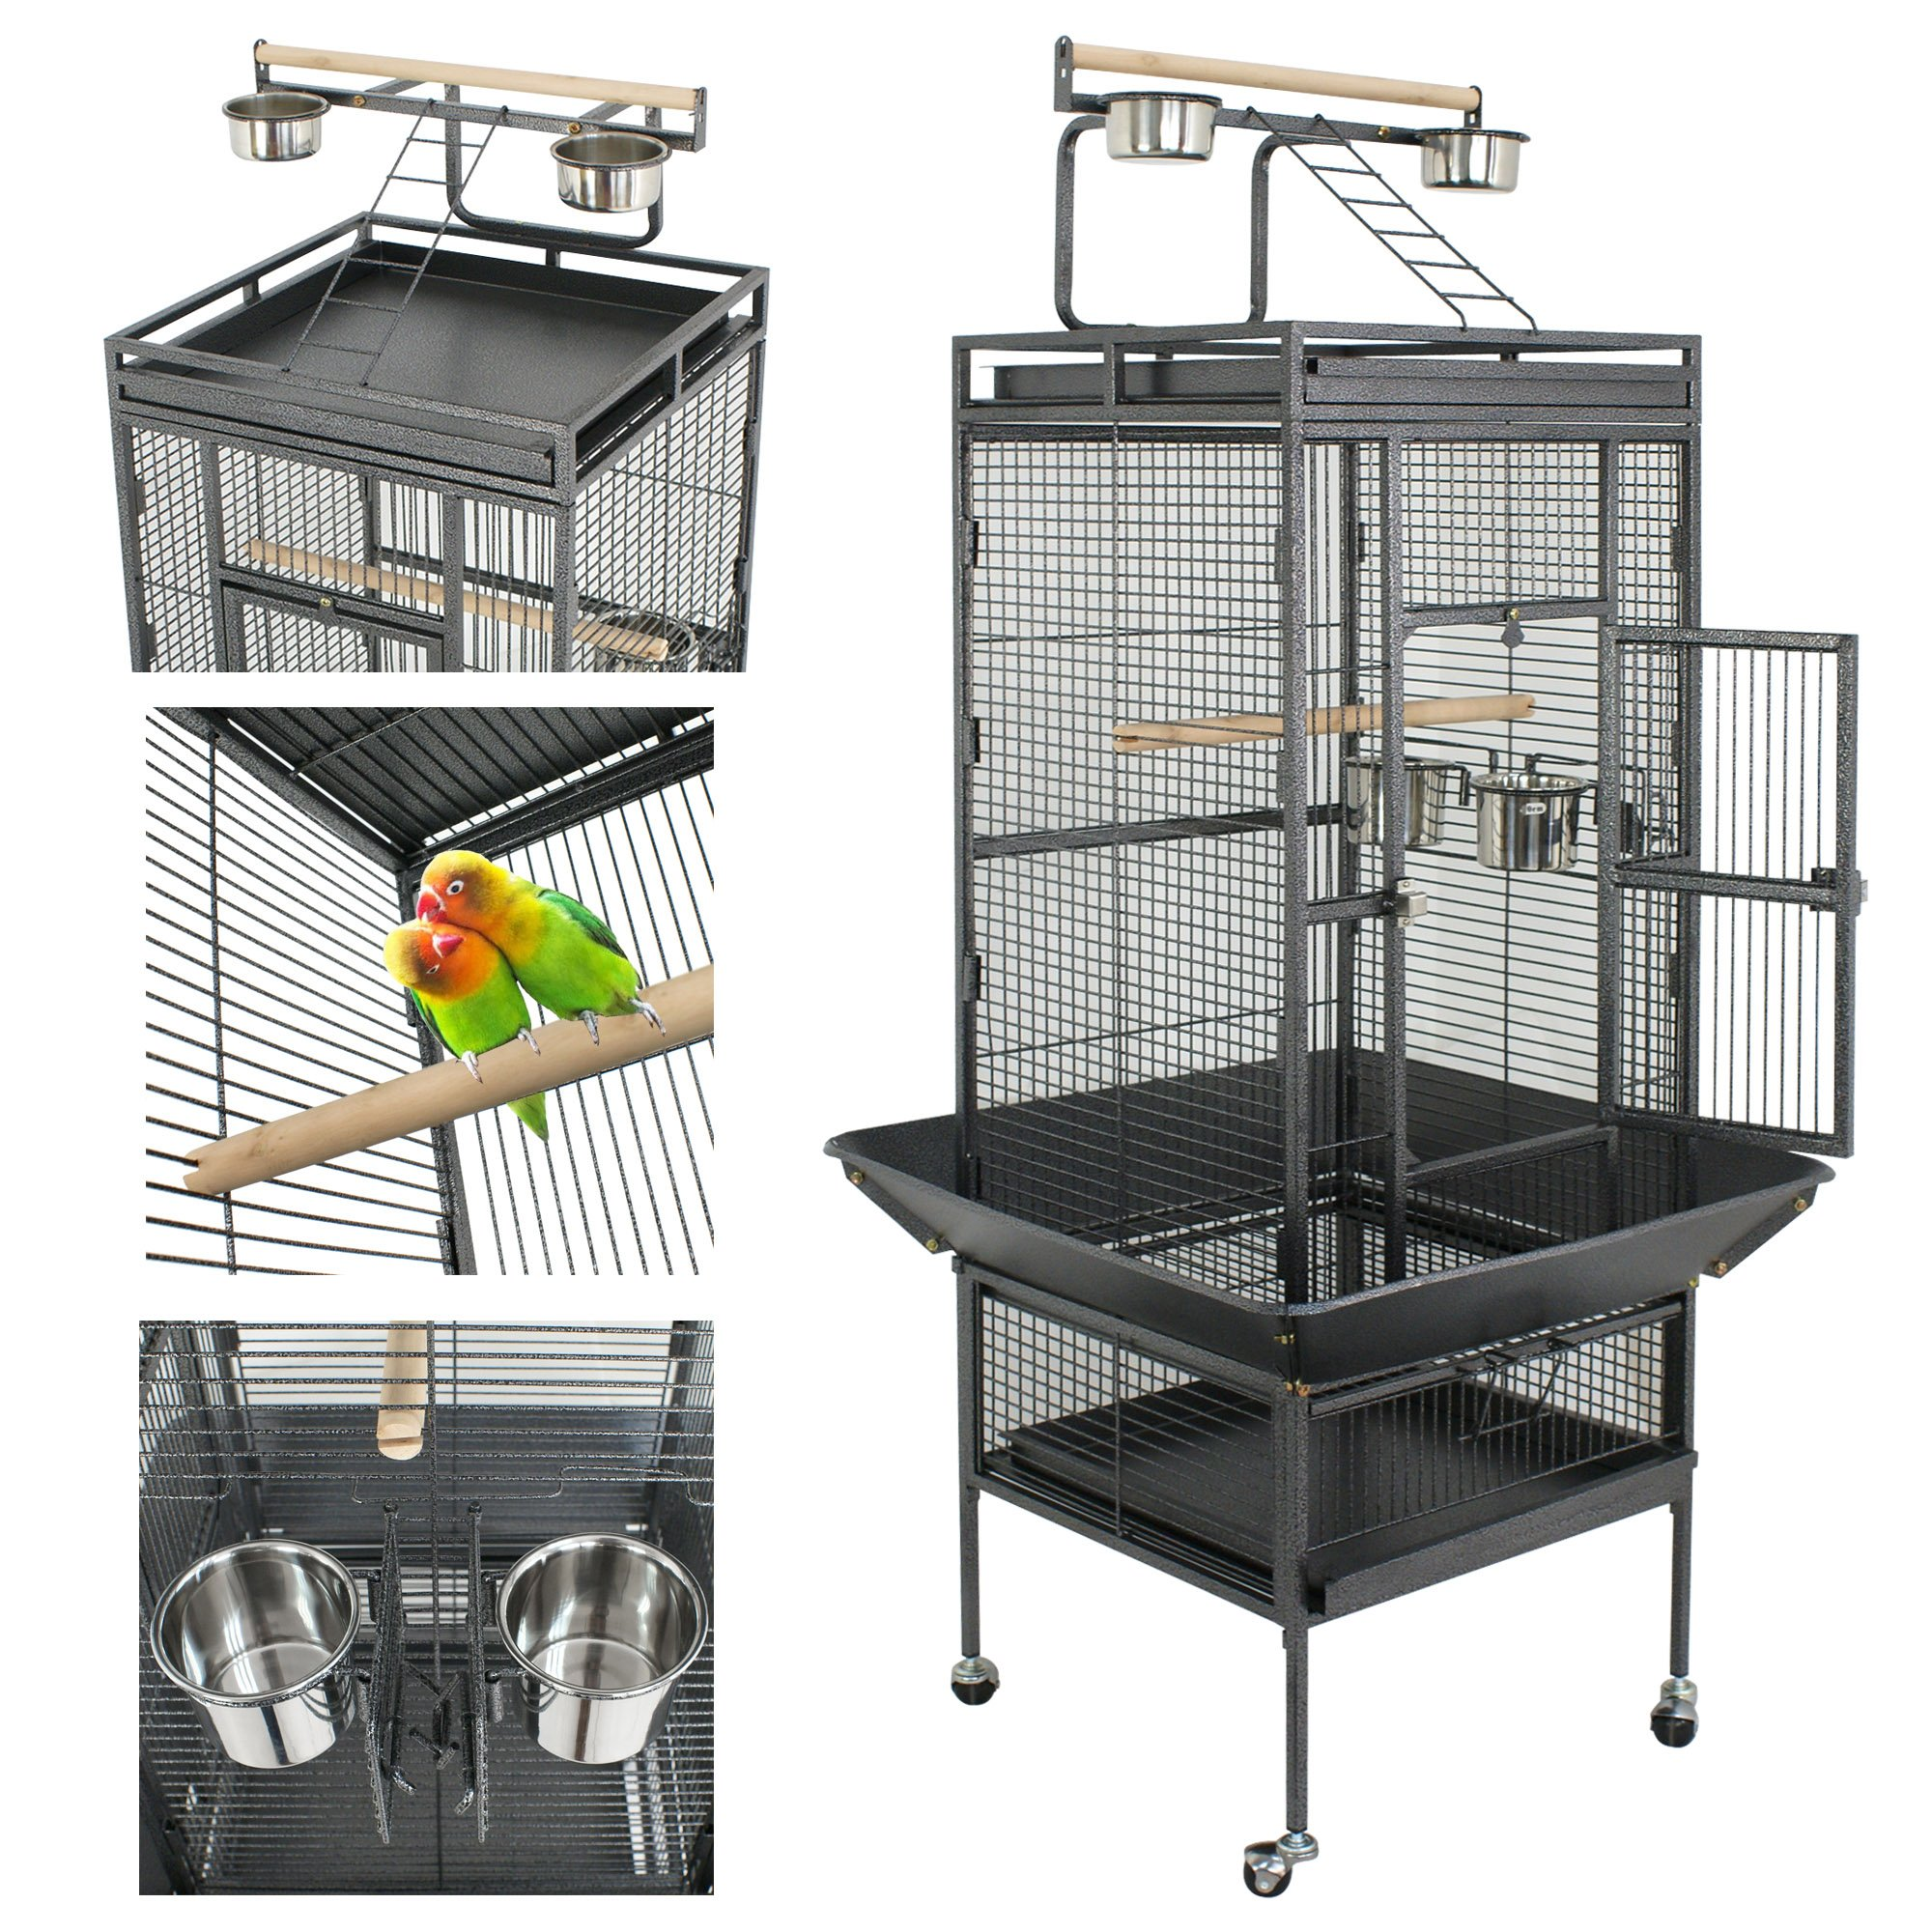 Nova Microdermabrasion 61''/68'' Large Bird Cage Play Top Parrot Cockatiel Parakeet Chinchilla Macaw Cockatoo Cage W/Stand Perch Pet Supplies (61'') by Nova Microdermabrasion